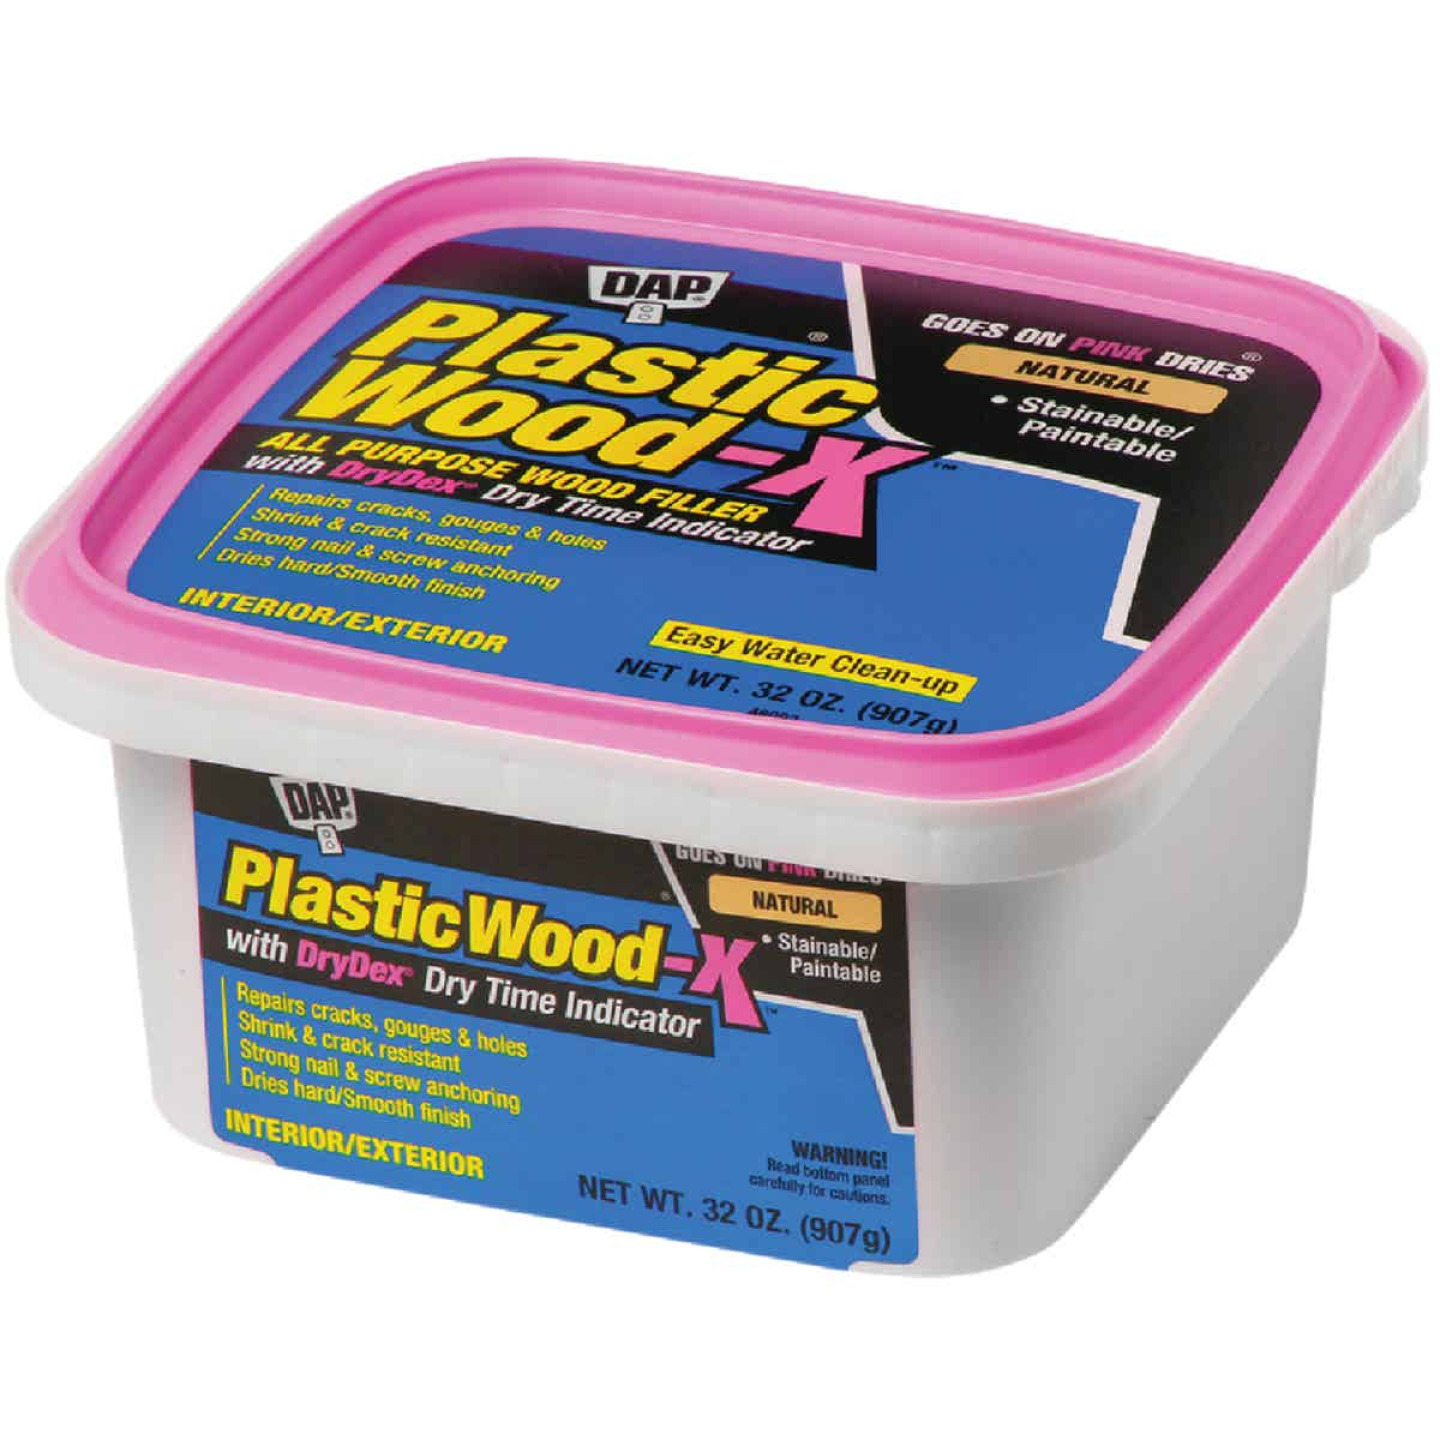 Dap Plastic Wood-X 32 Oz. All Purpose Wood Filler with DryDex Dry Time Indicator Image 1